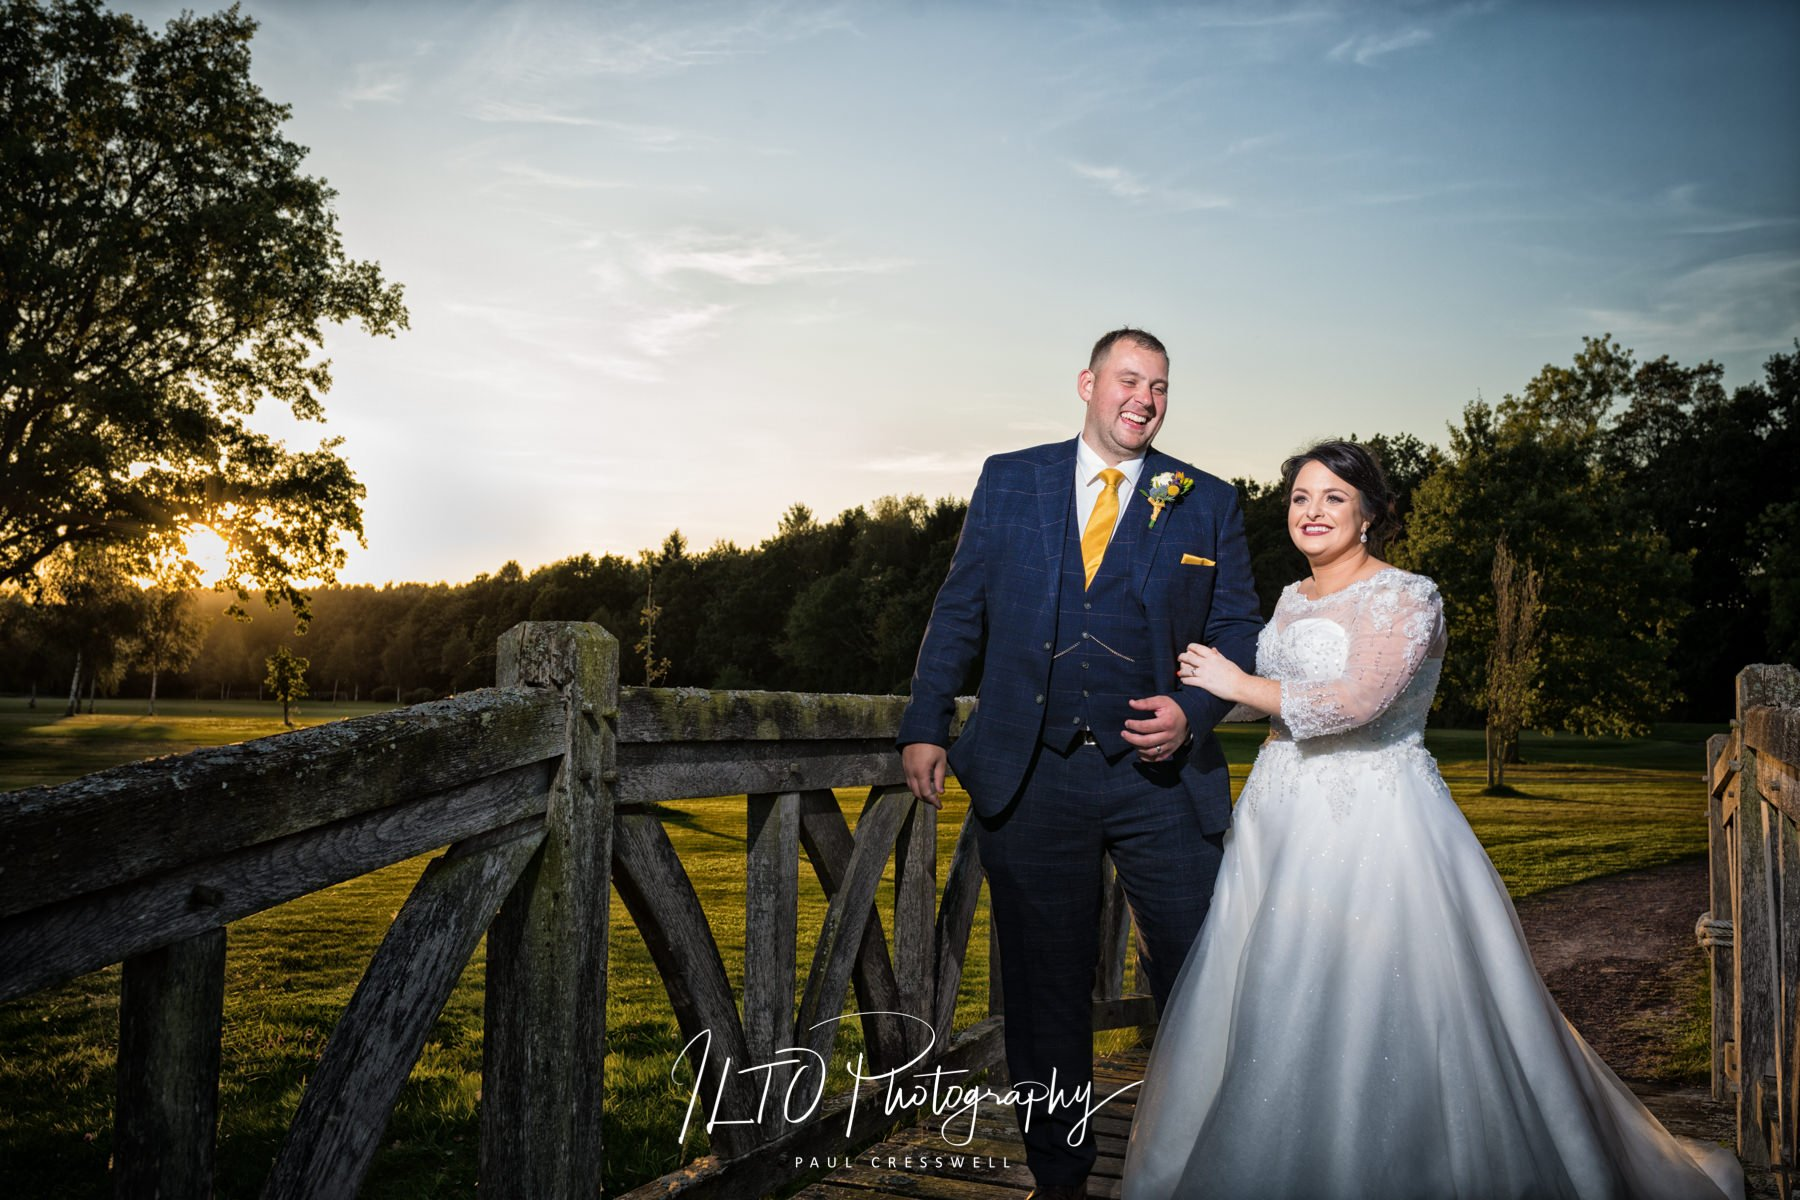 Wedding Photographer portolfio west yorkshire ILTO Photography